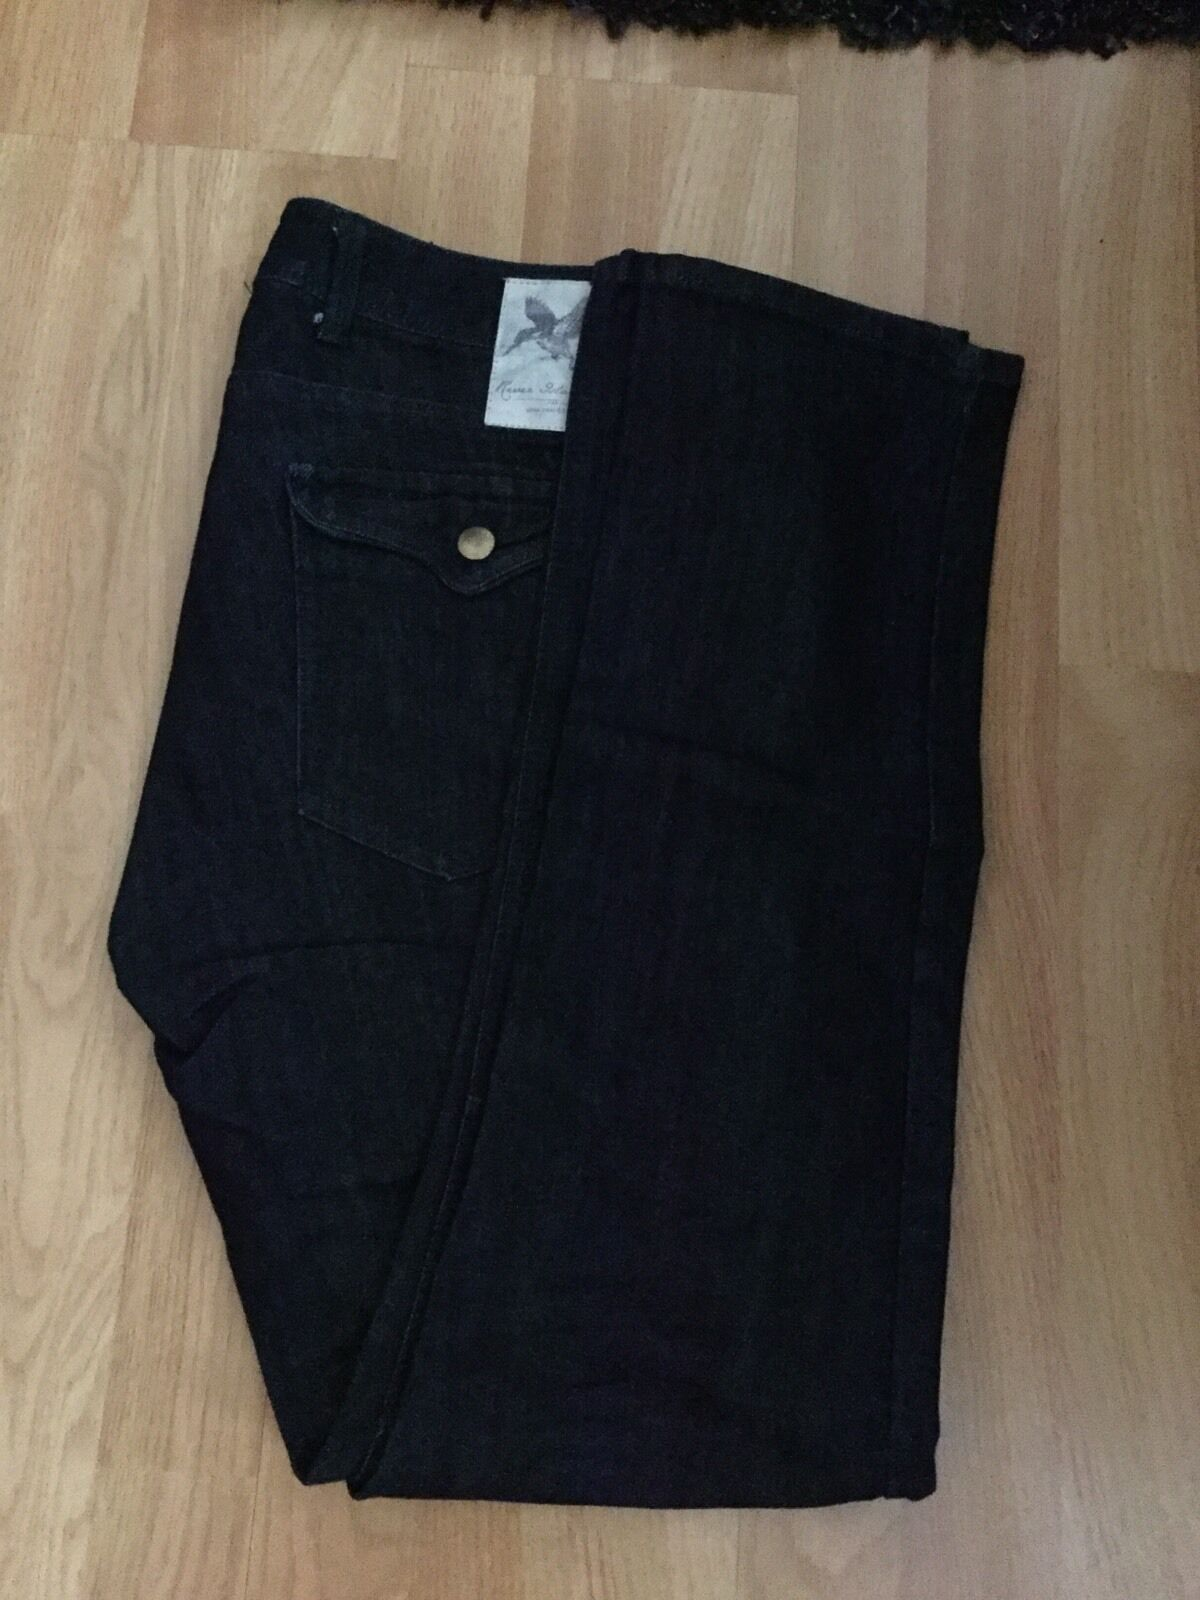 Jeans, Size 16, From River Island